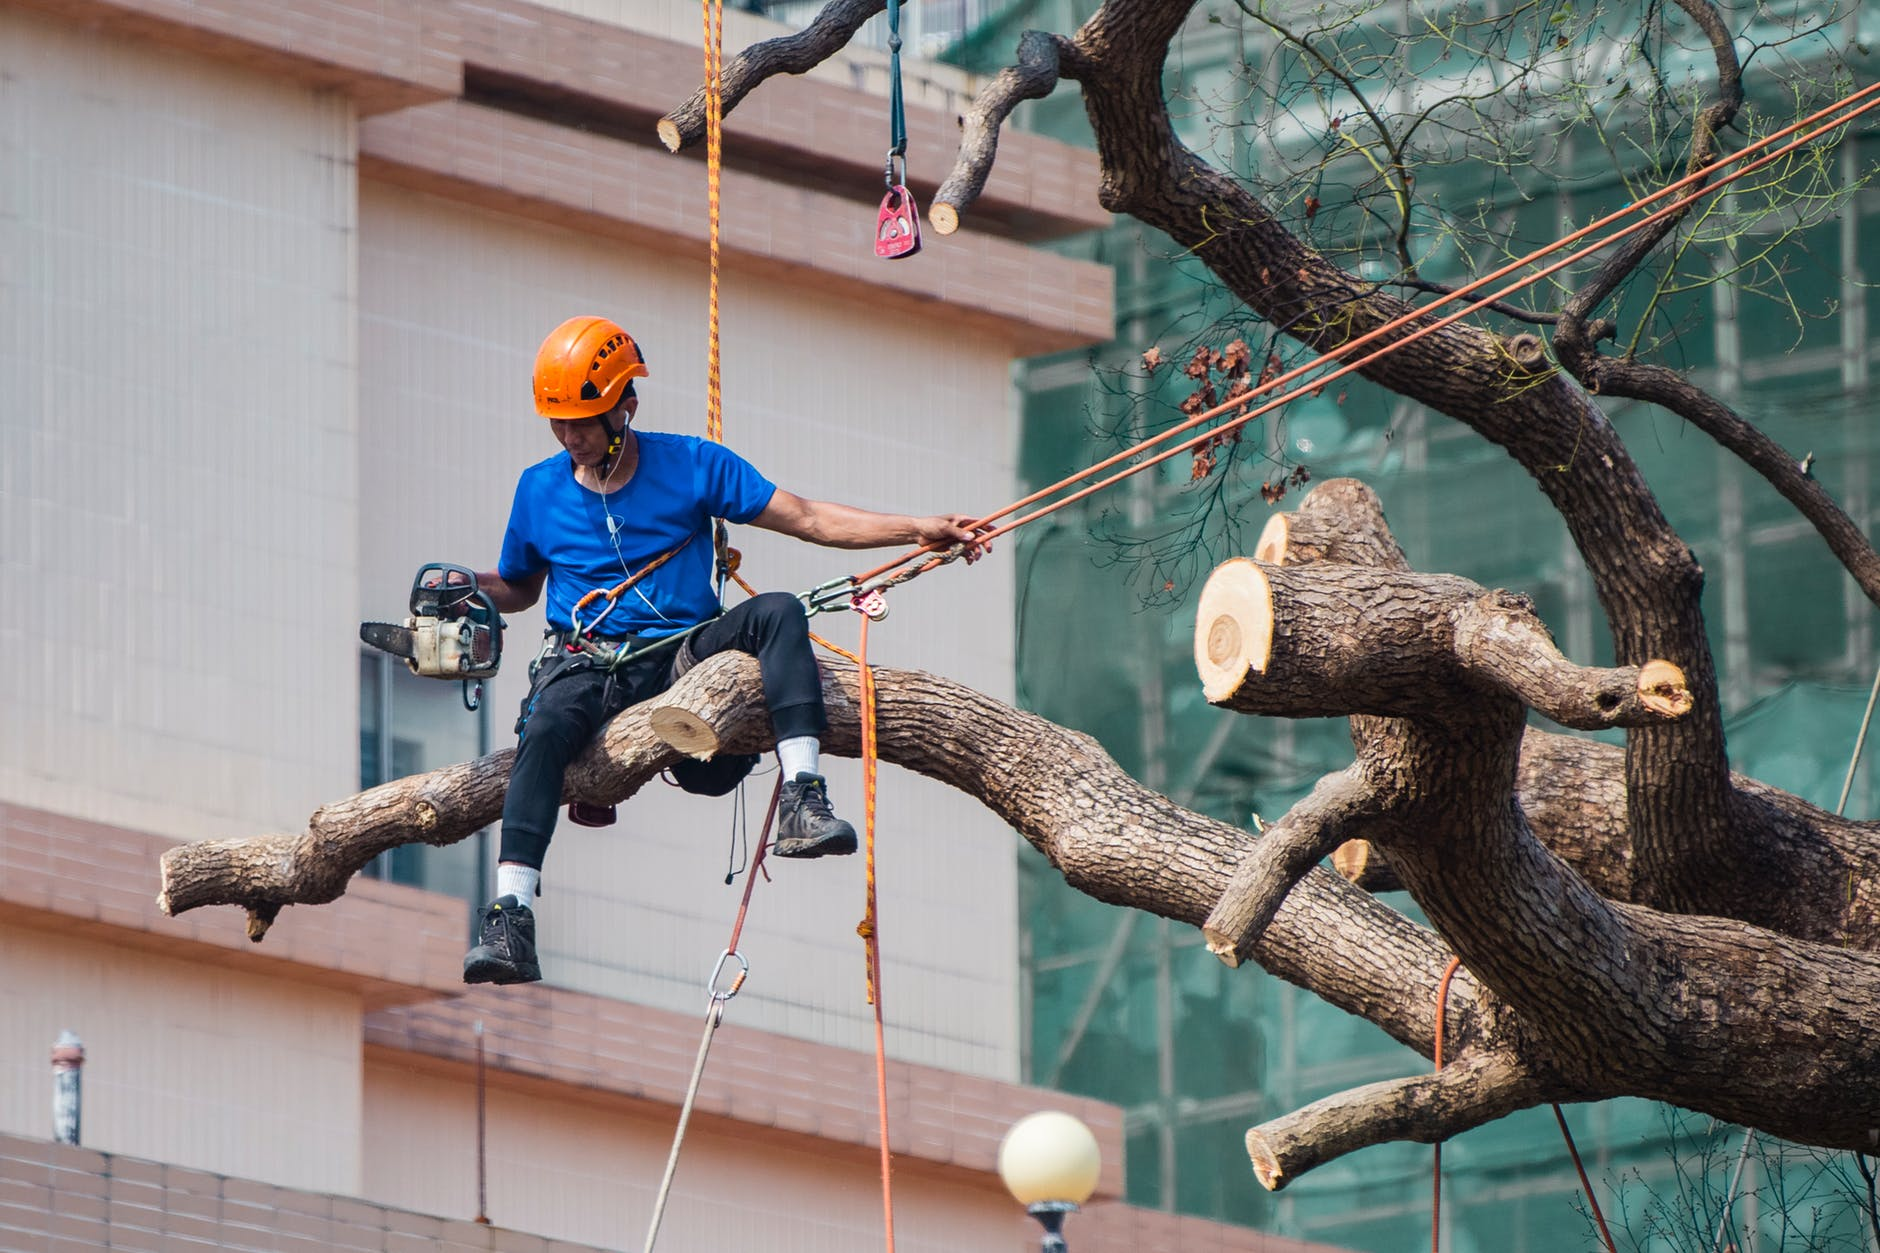 Tree service professional limbing a tree